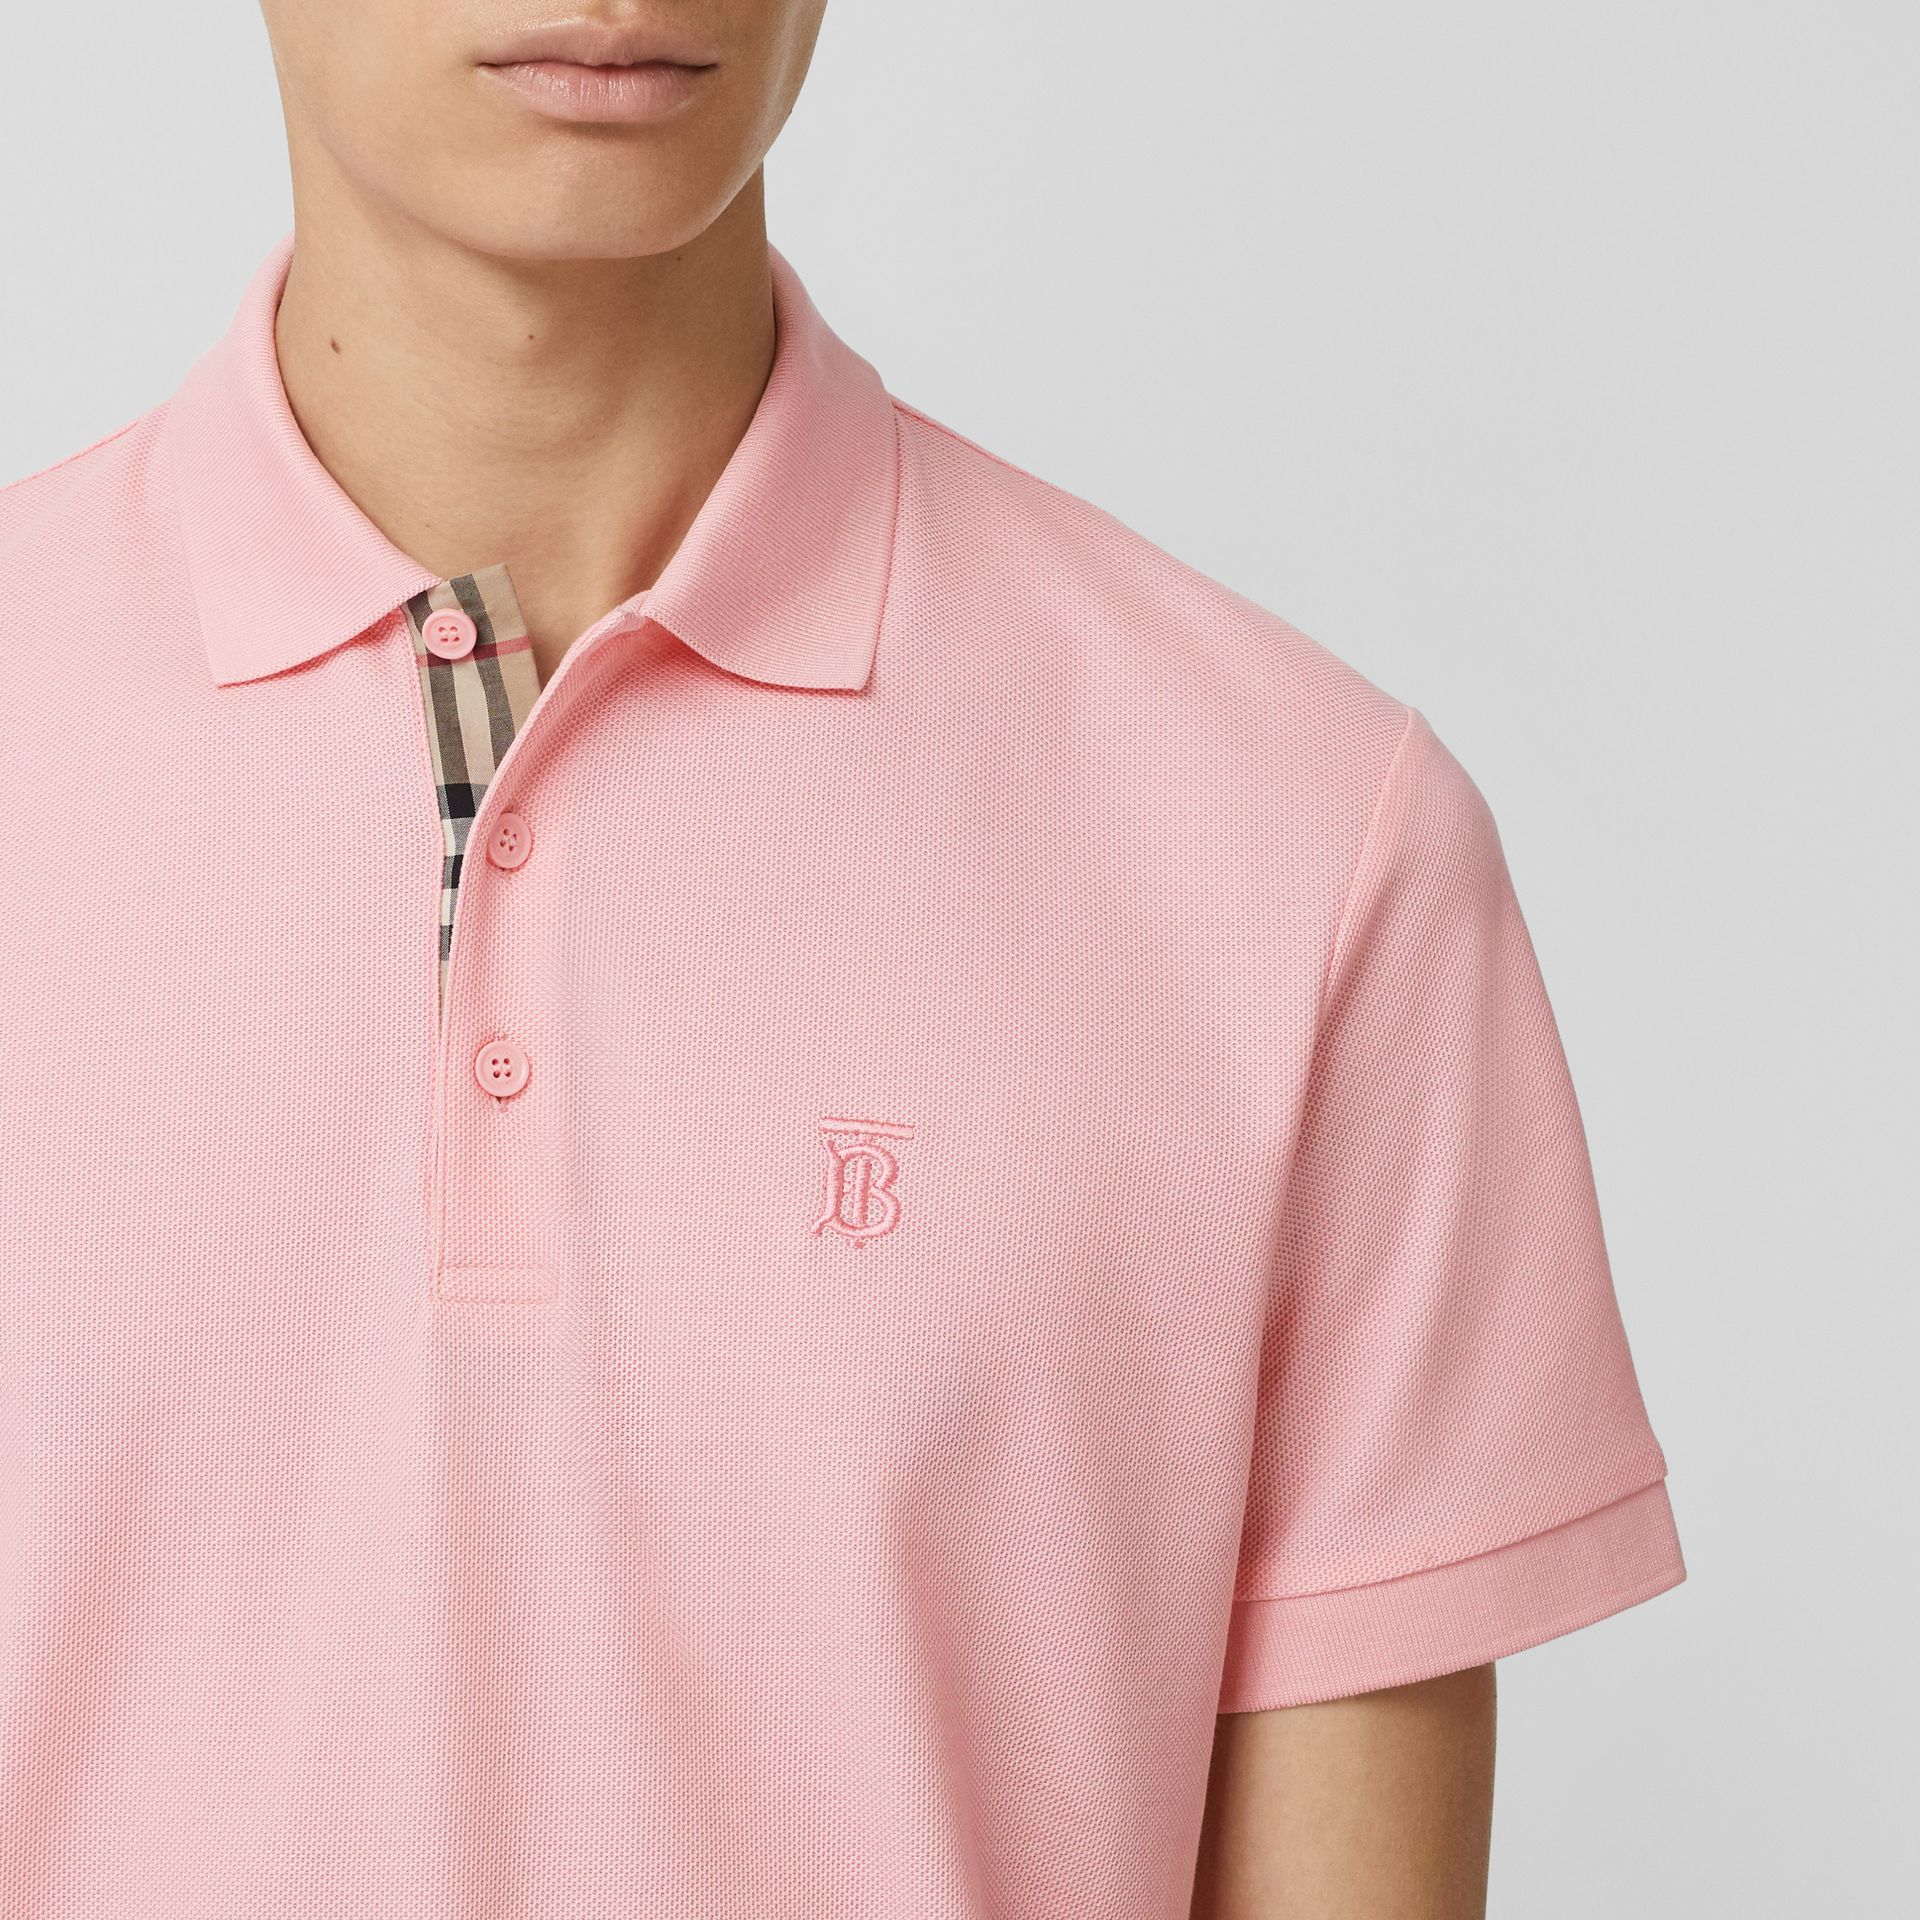 Monogram Motif Cotton Piqué Polo Shirt in Candy Pink - Men | Burberry Australia - gallery image 1